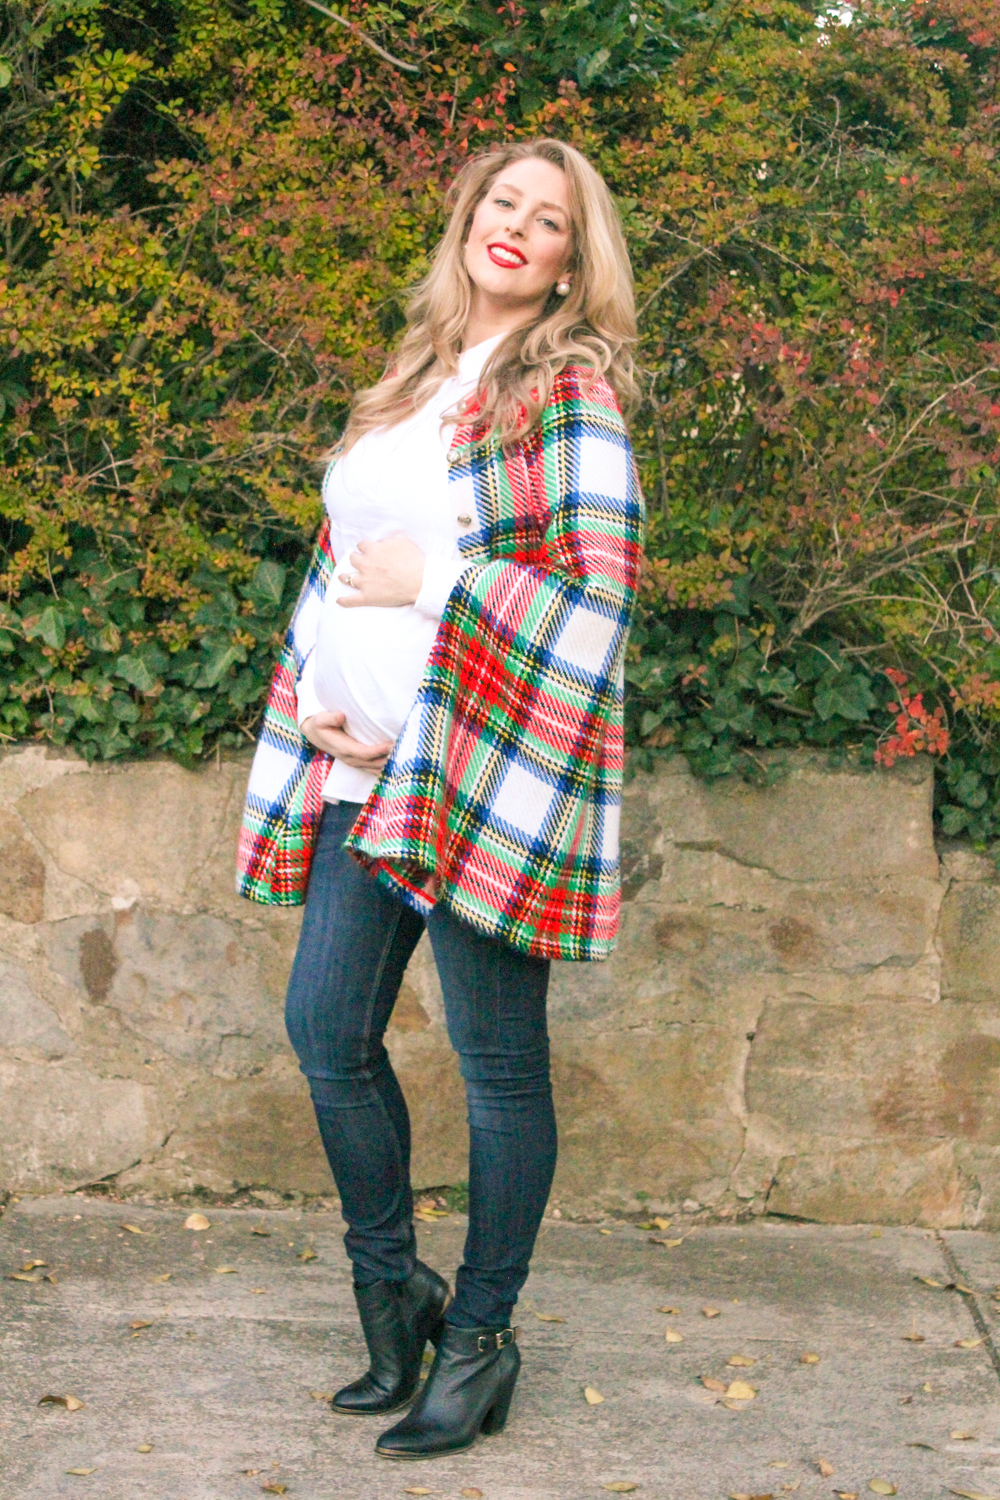 Visit the Goldfields Girl blog for more maternity style